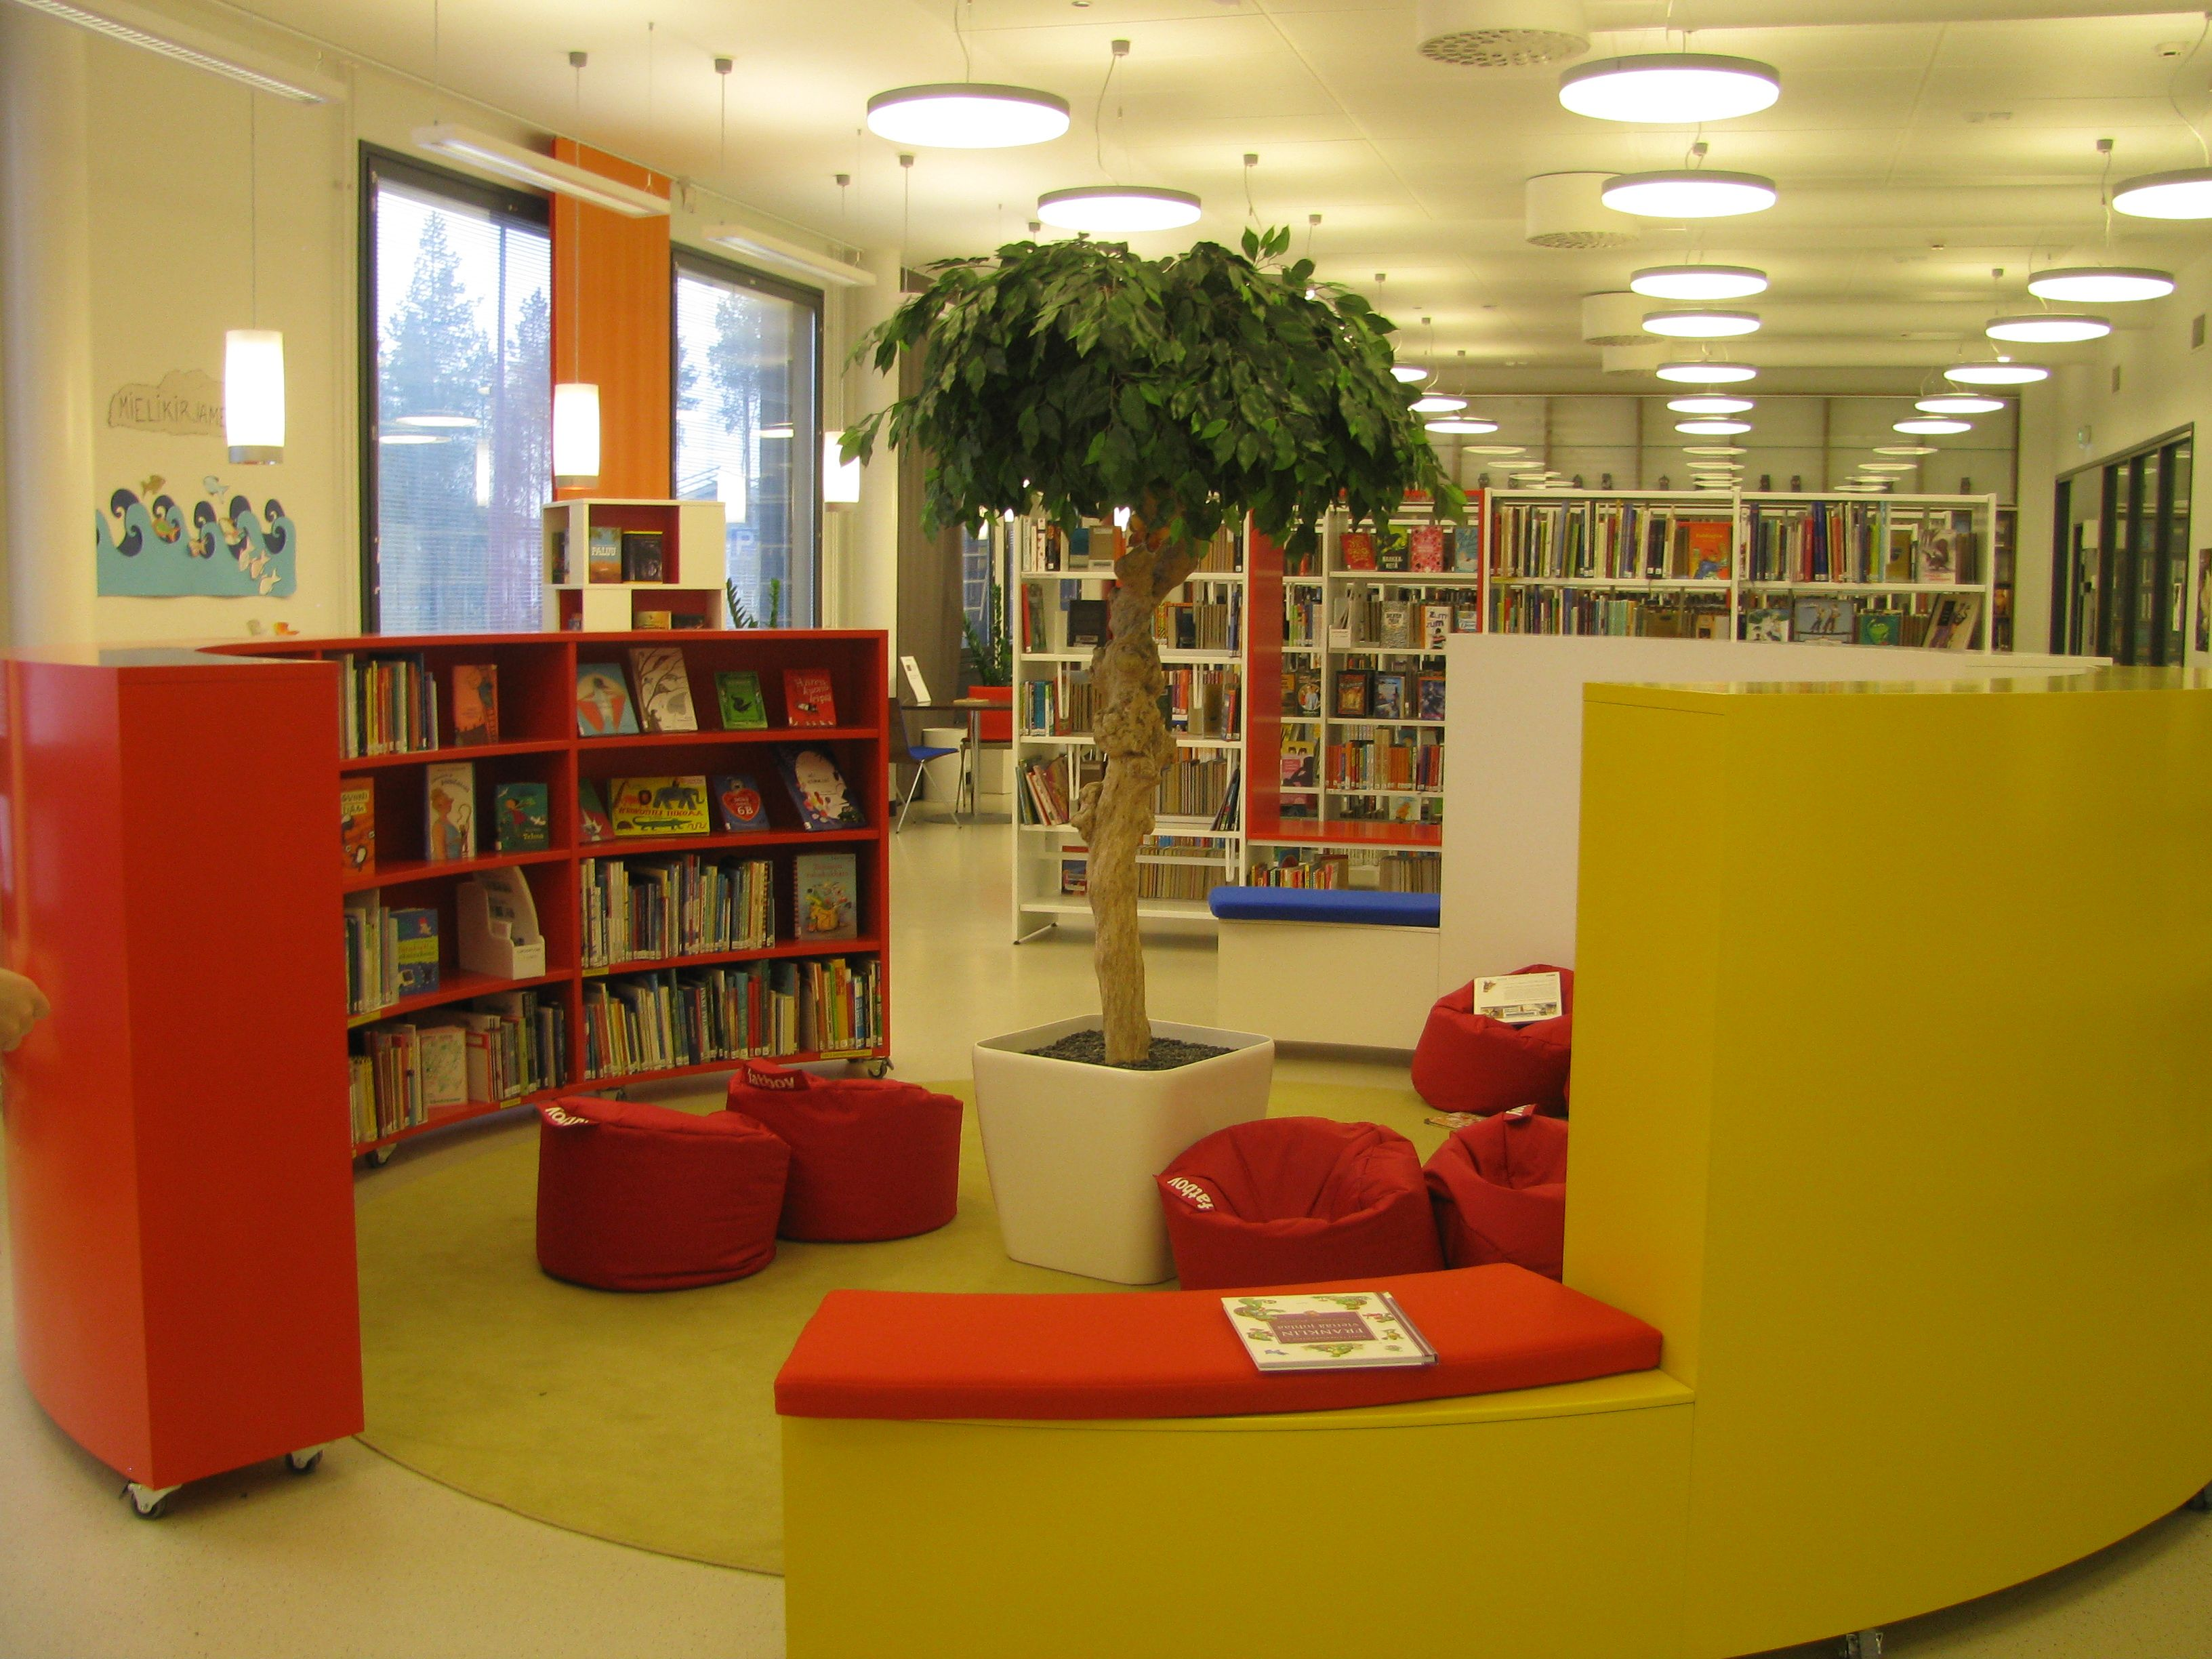 Ritaharju School  Oulu  Joint school and public library  reading nook  demarcated by colourful. 9 best Library furniture images on Pinterest